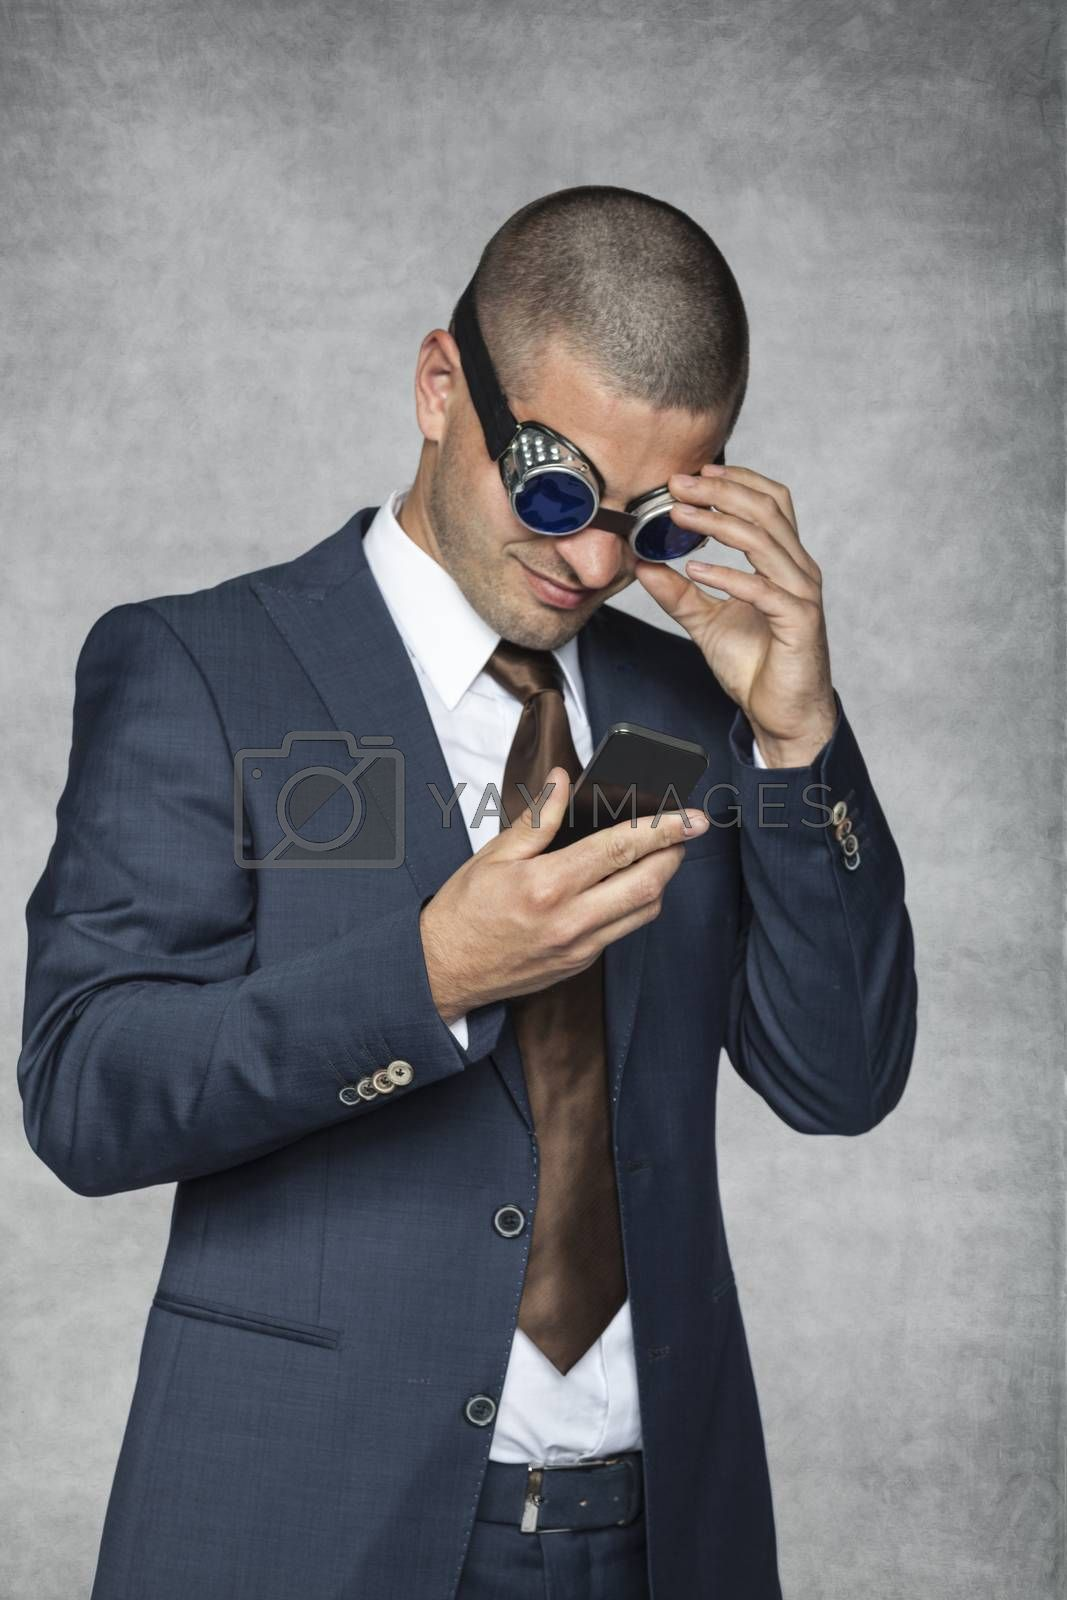 Royalty free image of businessman checking email by maselkoo99